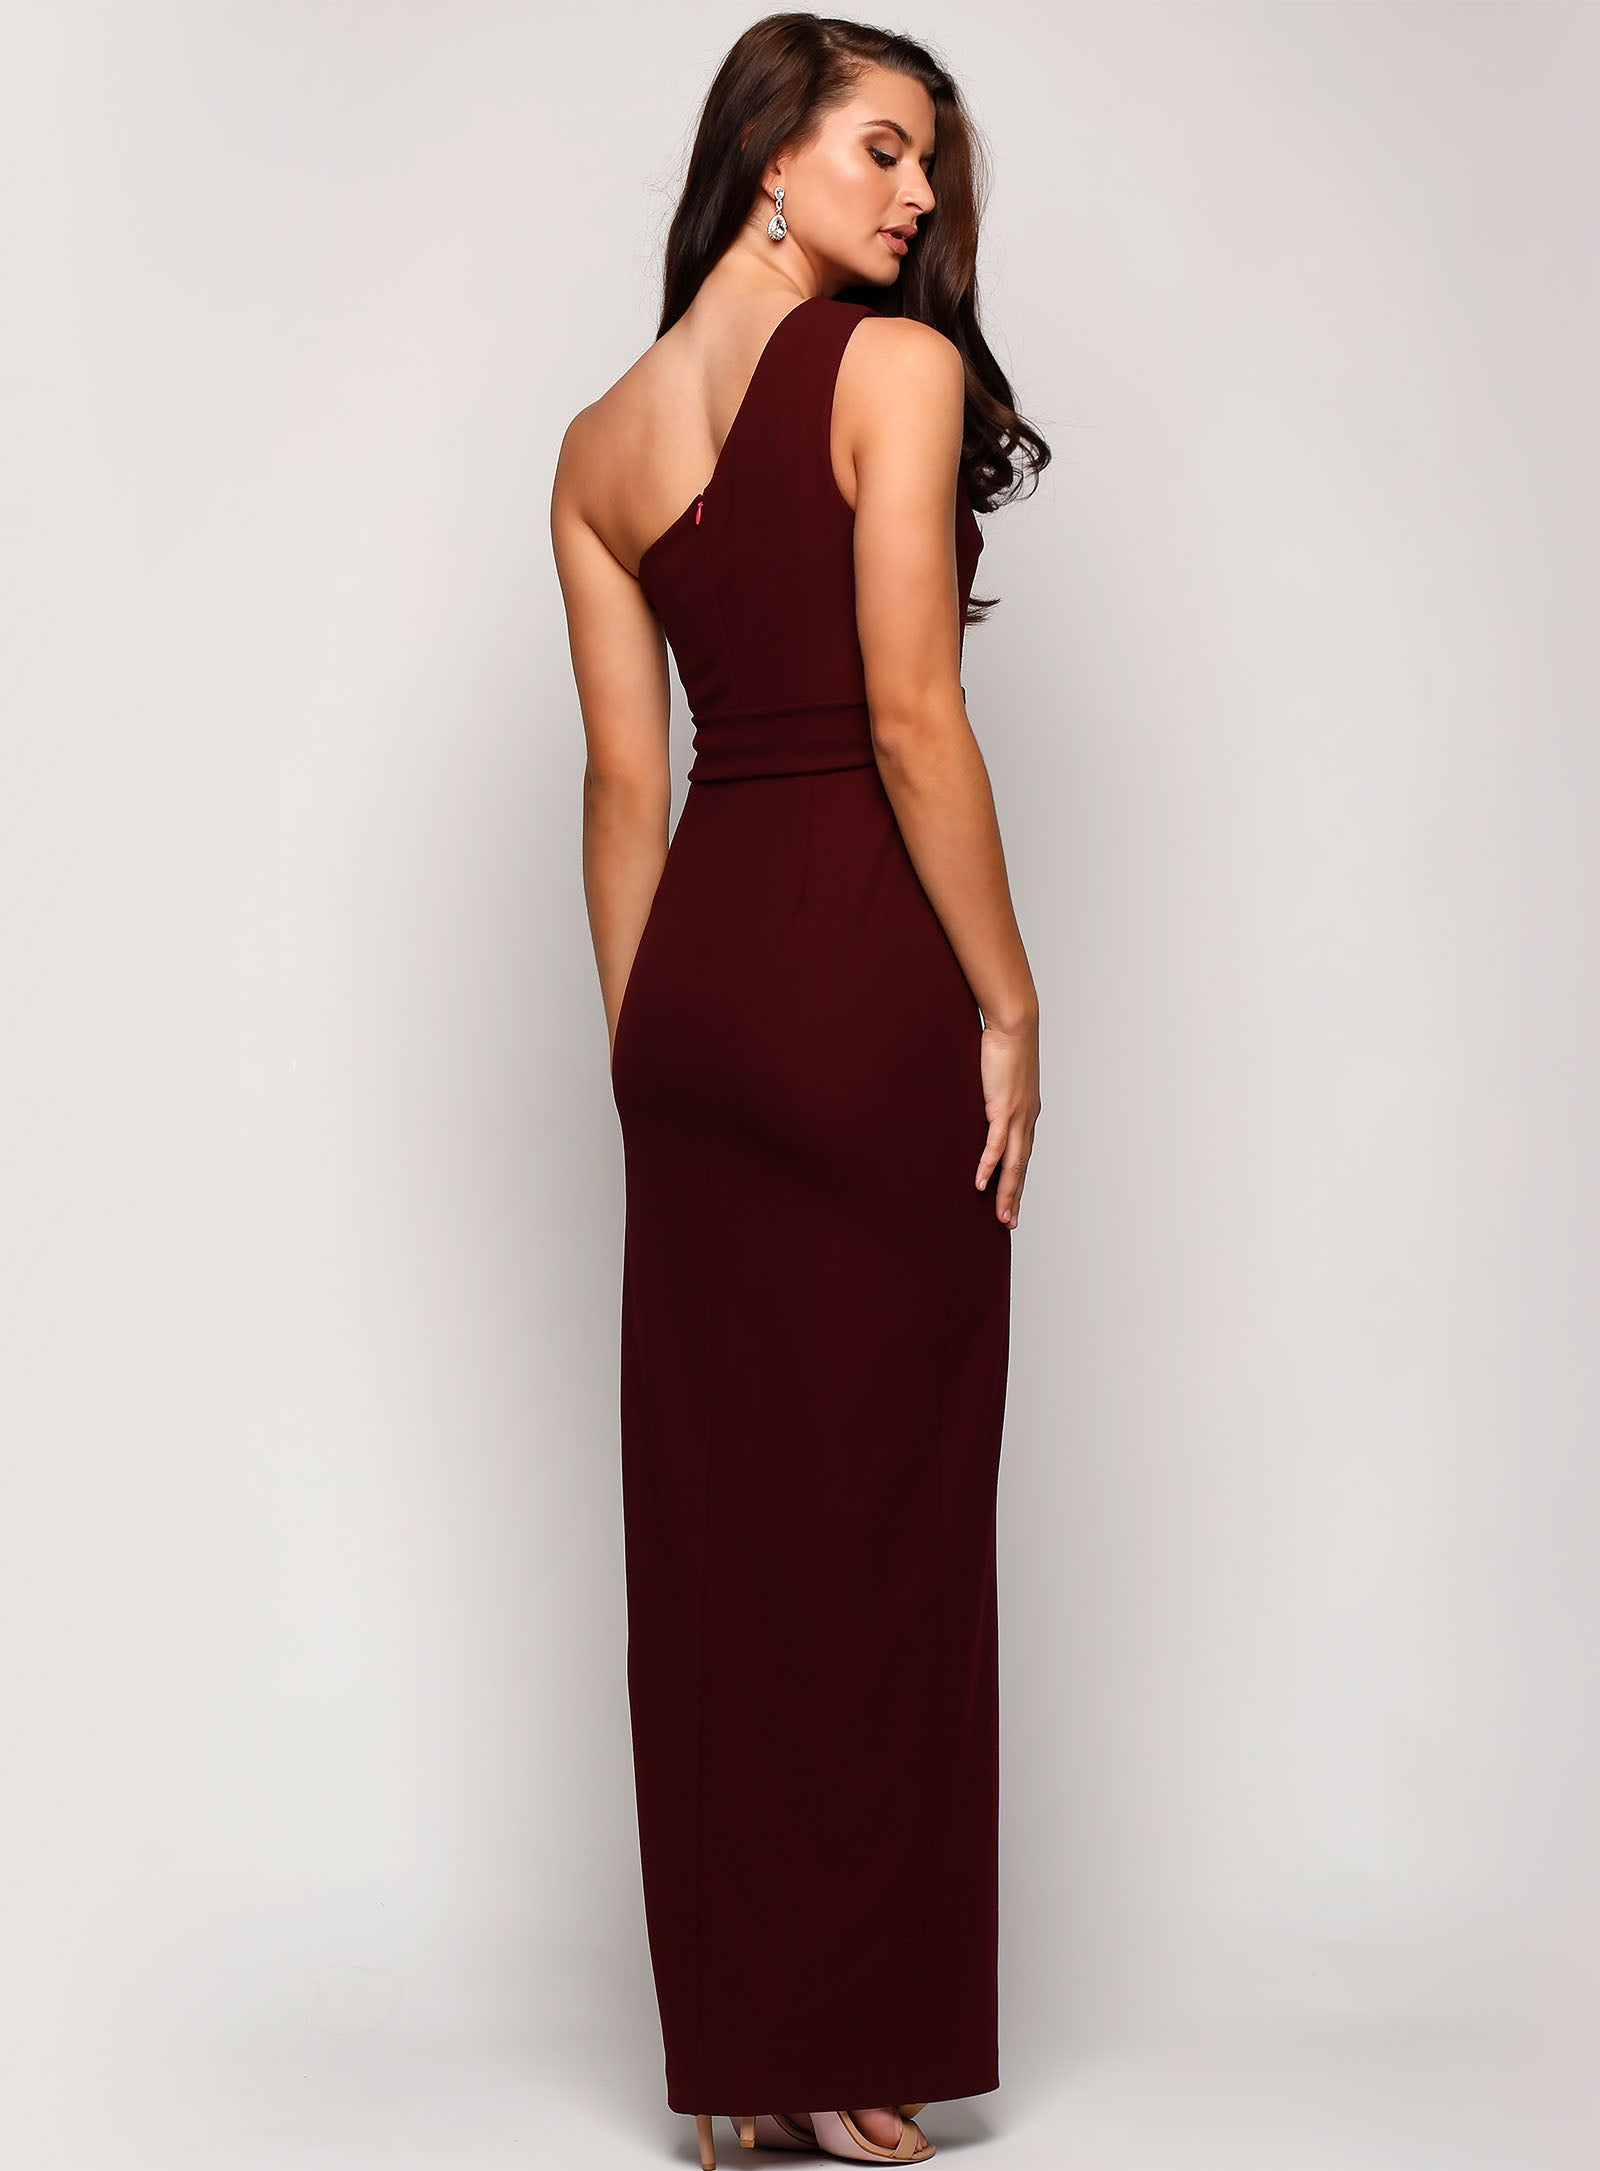 Topia One Shoulder Pencil Dress